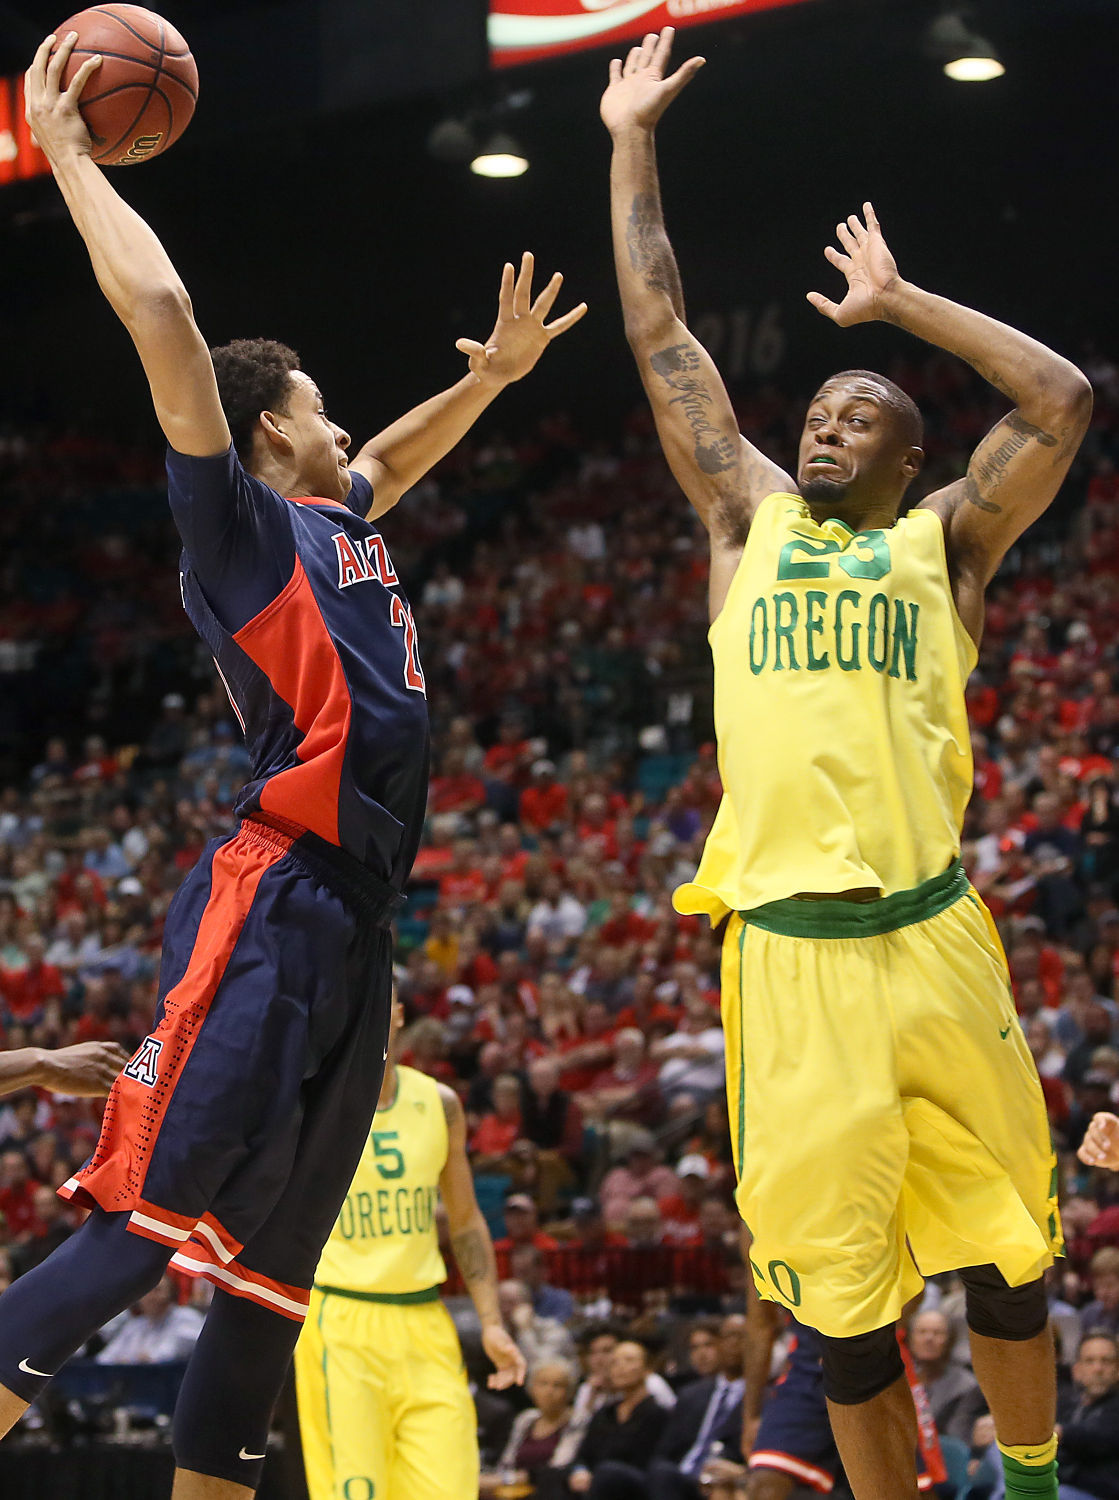 Arizona vs Oregon